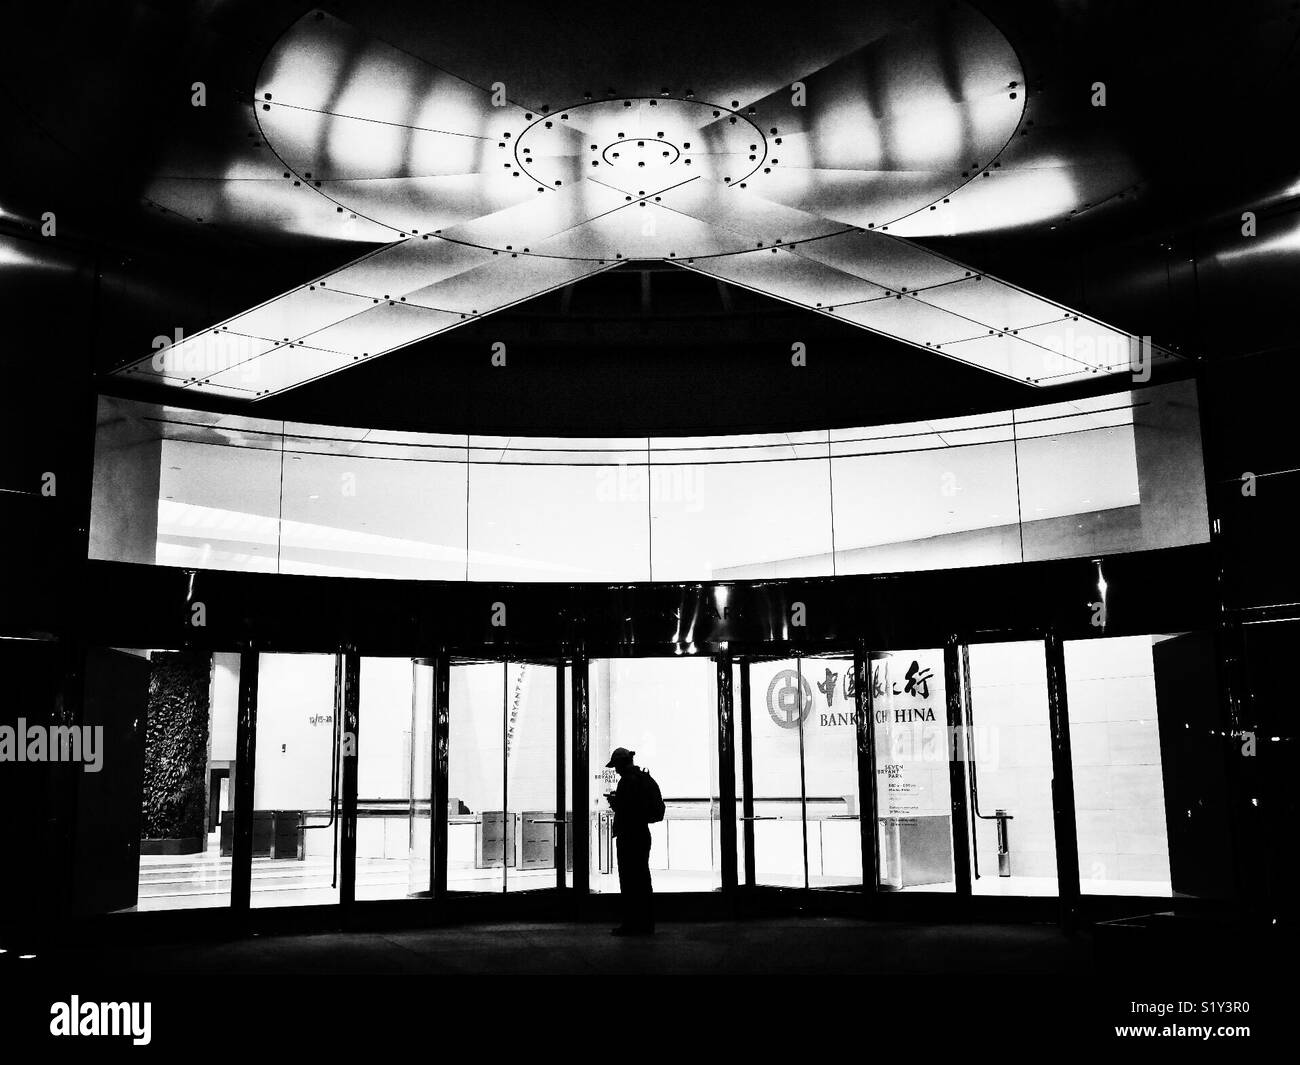 Silhouette of man standing outside of Bank of China in New York City, USA Stock Photo